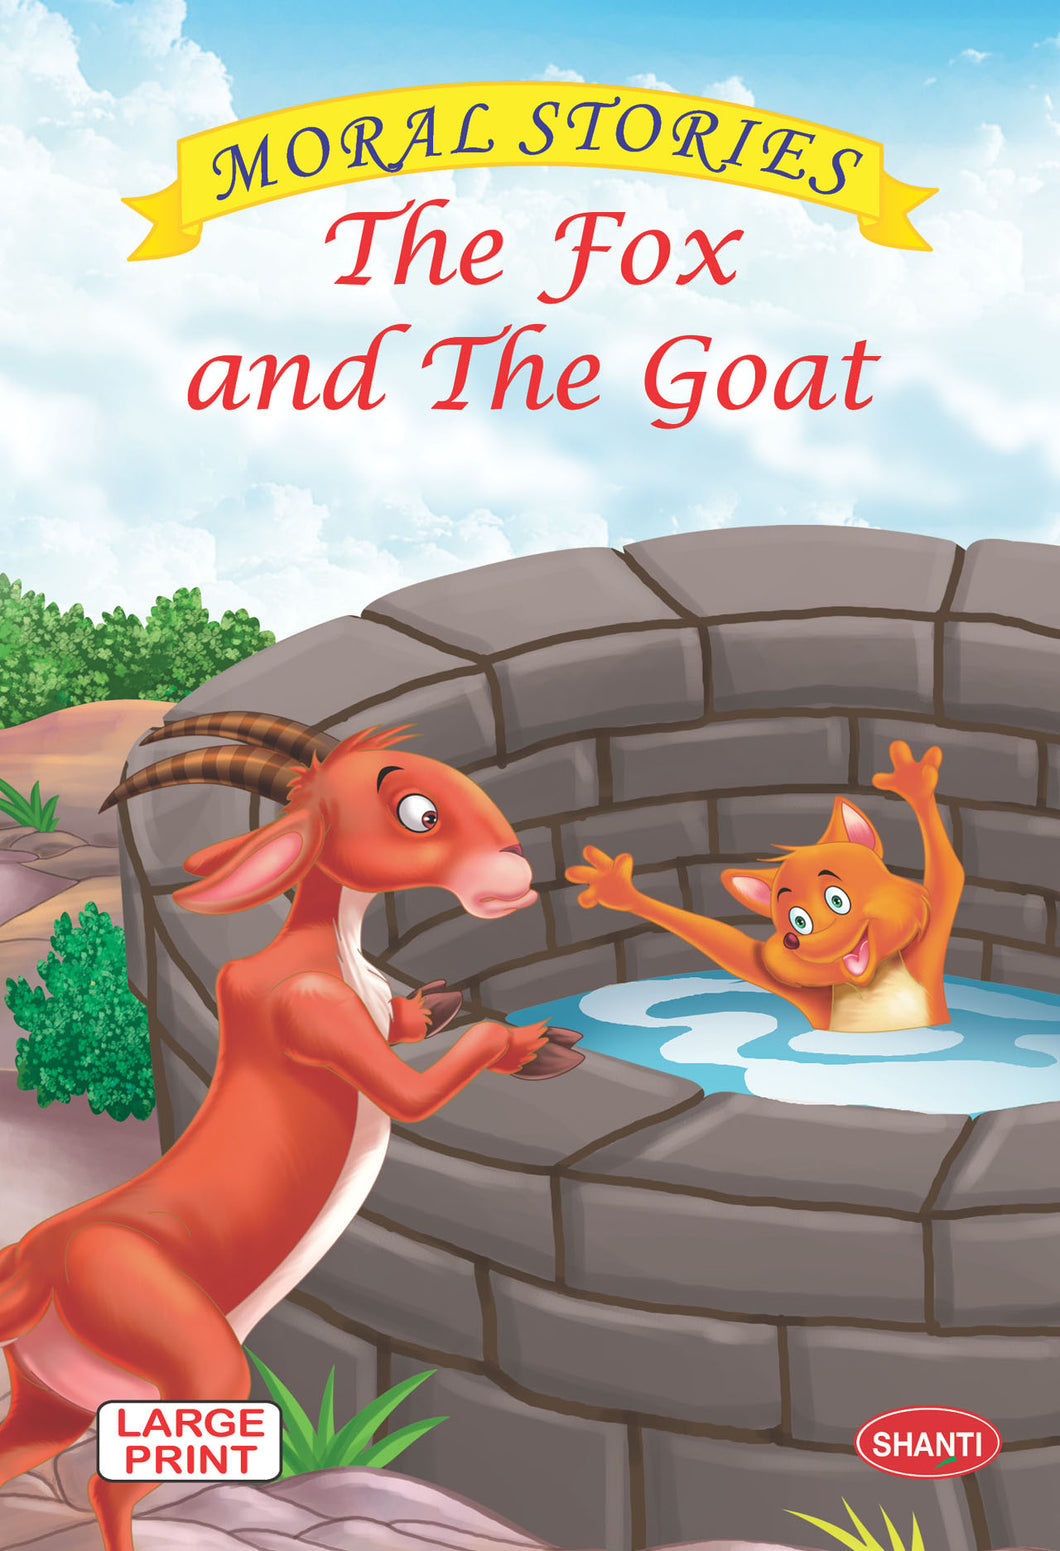 Moral stories for children-Moral Stories (English) - The Fox and The Goat